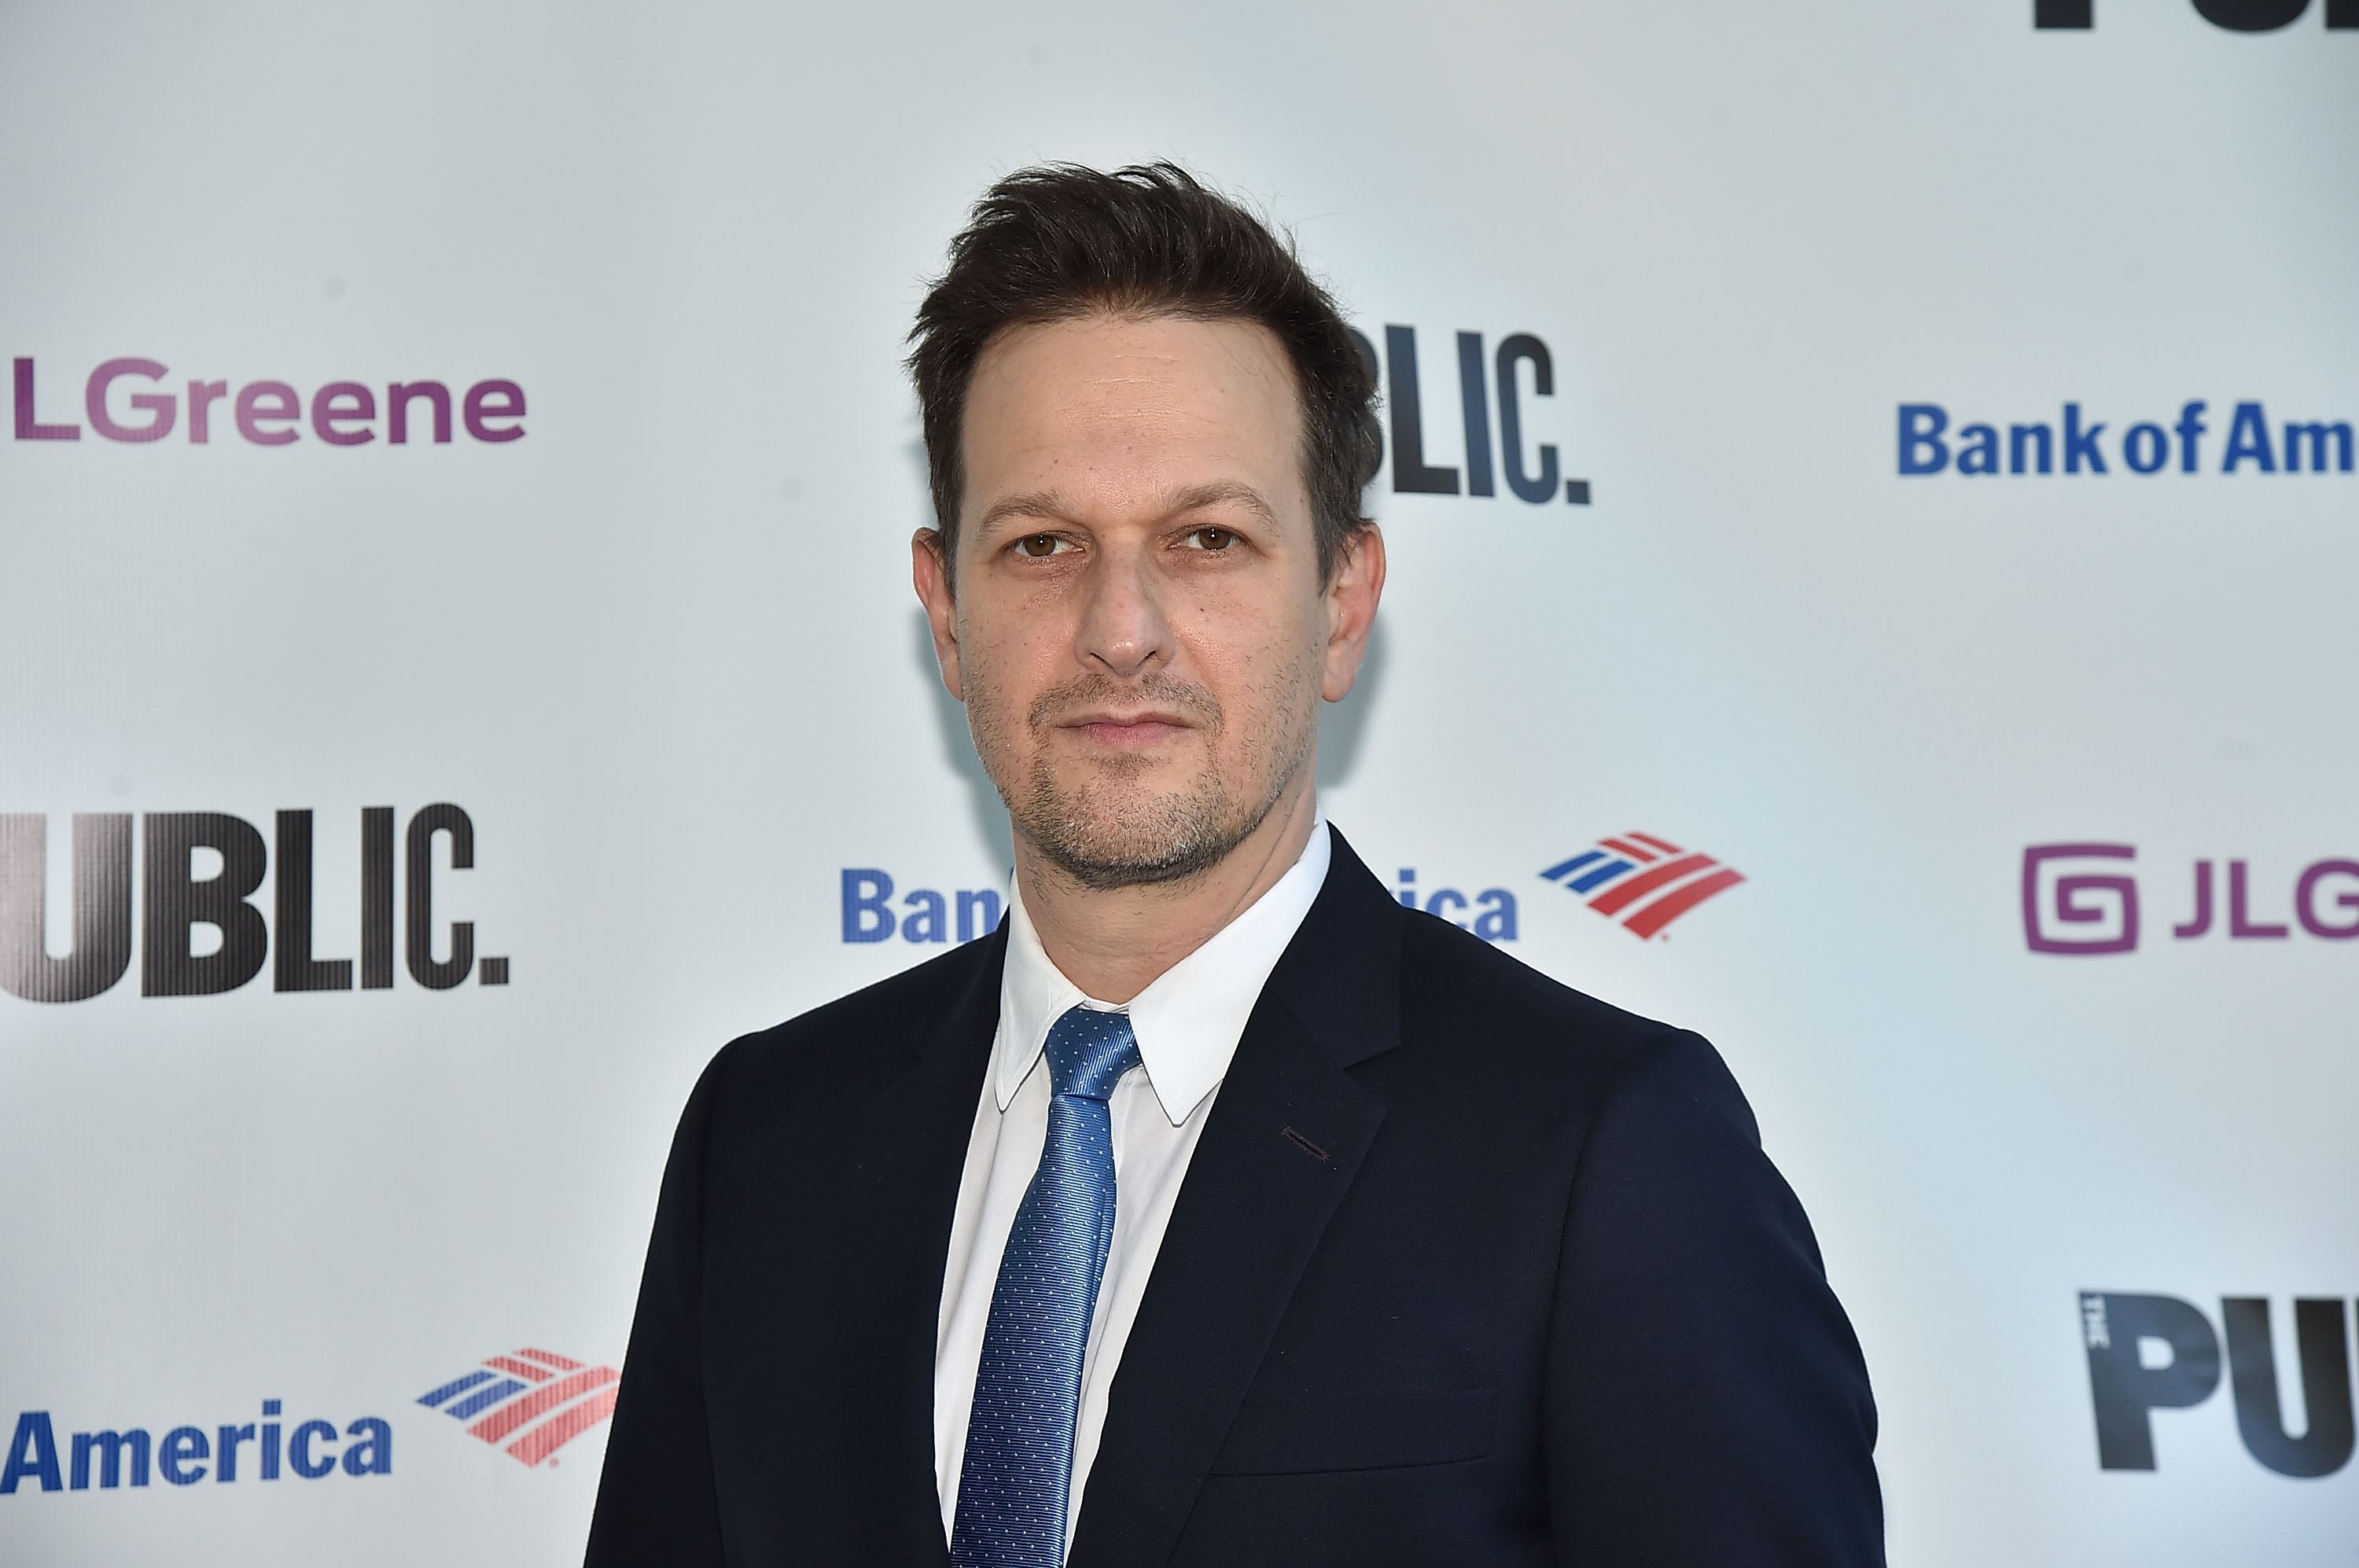 'The Good Wife' actor Josh Charles sounds off on Donald Trump and those that still support him on Twitter